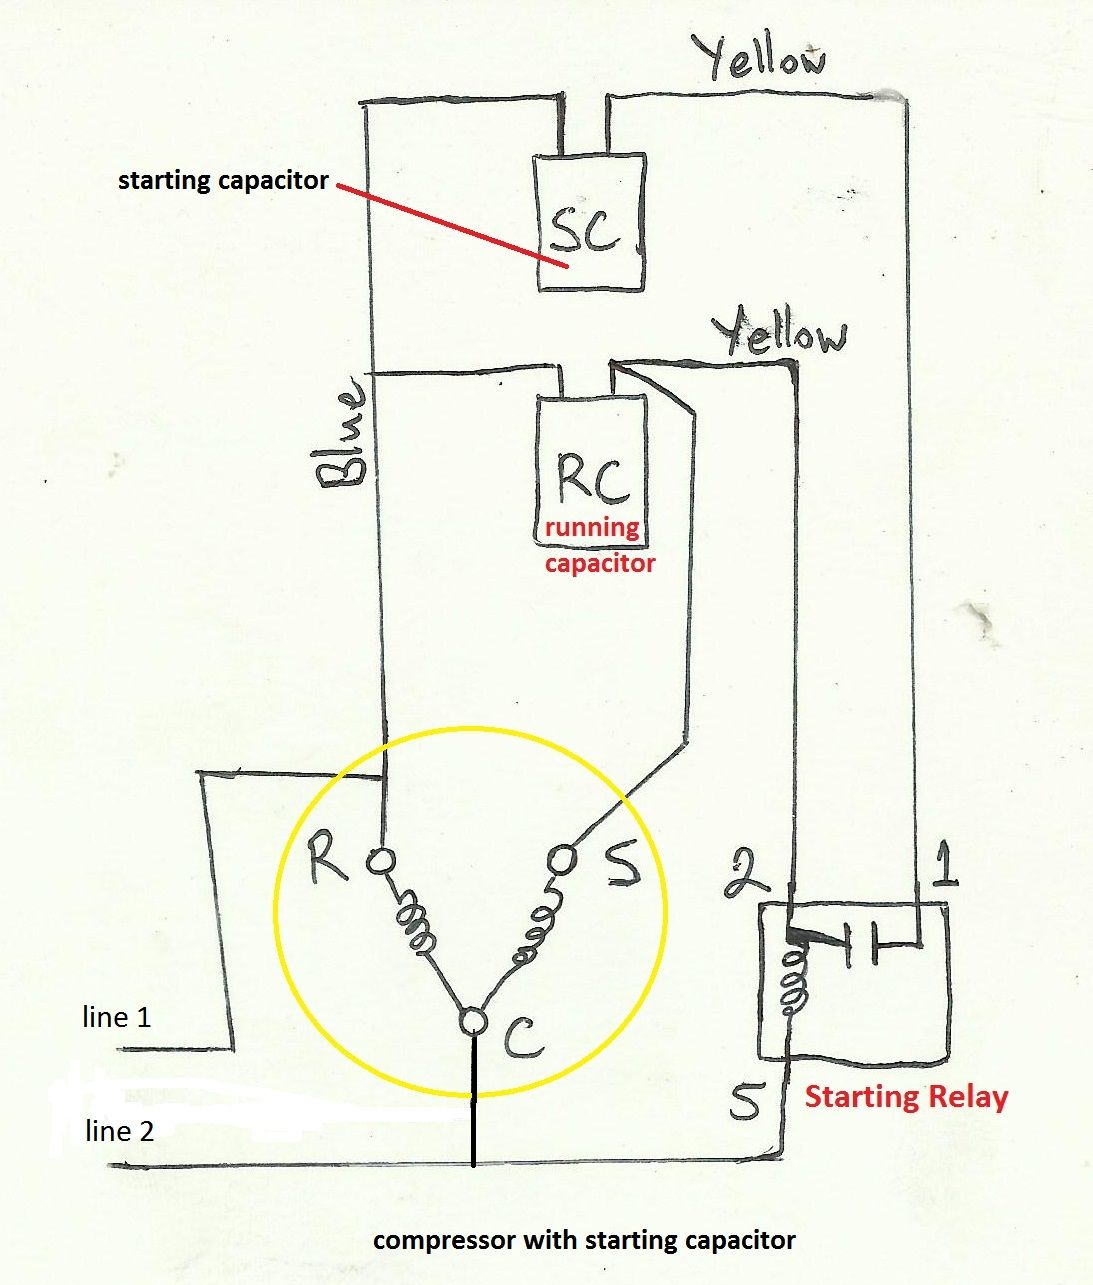 medium resolution of rotary compressor wiring diagram wiring diagram load panasonic rotary compressor wiring diagram ac compressor schematic wiring